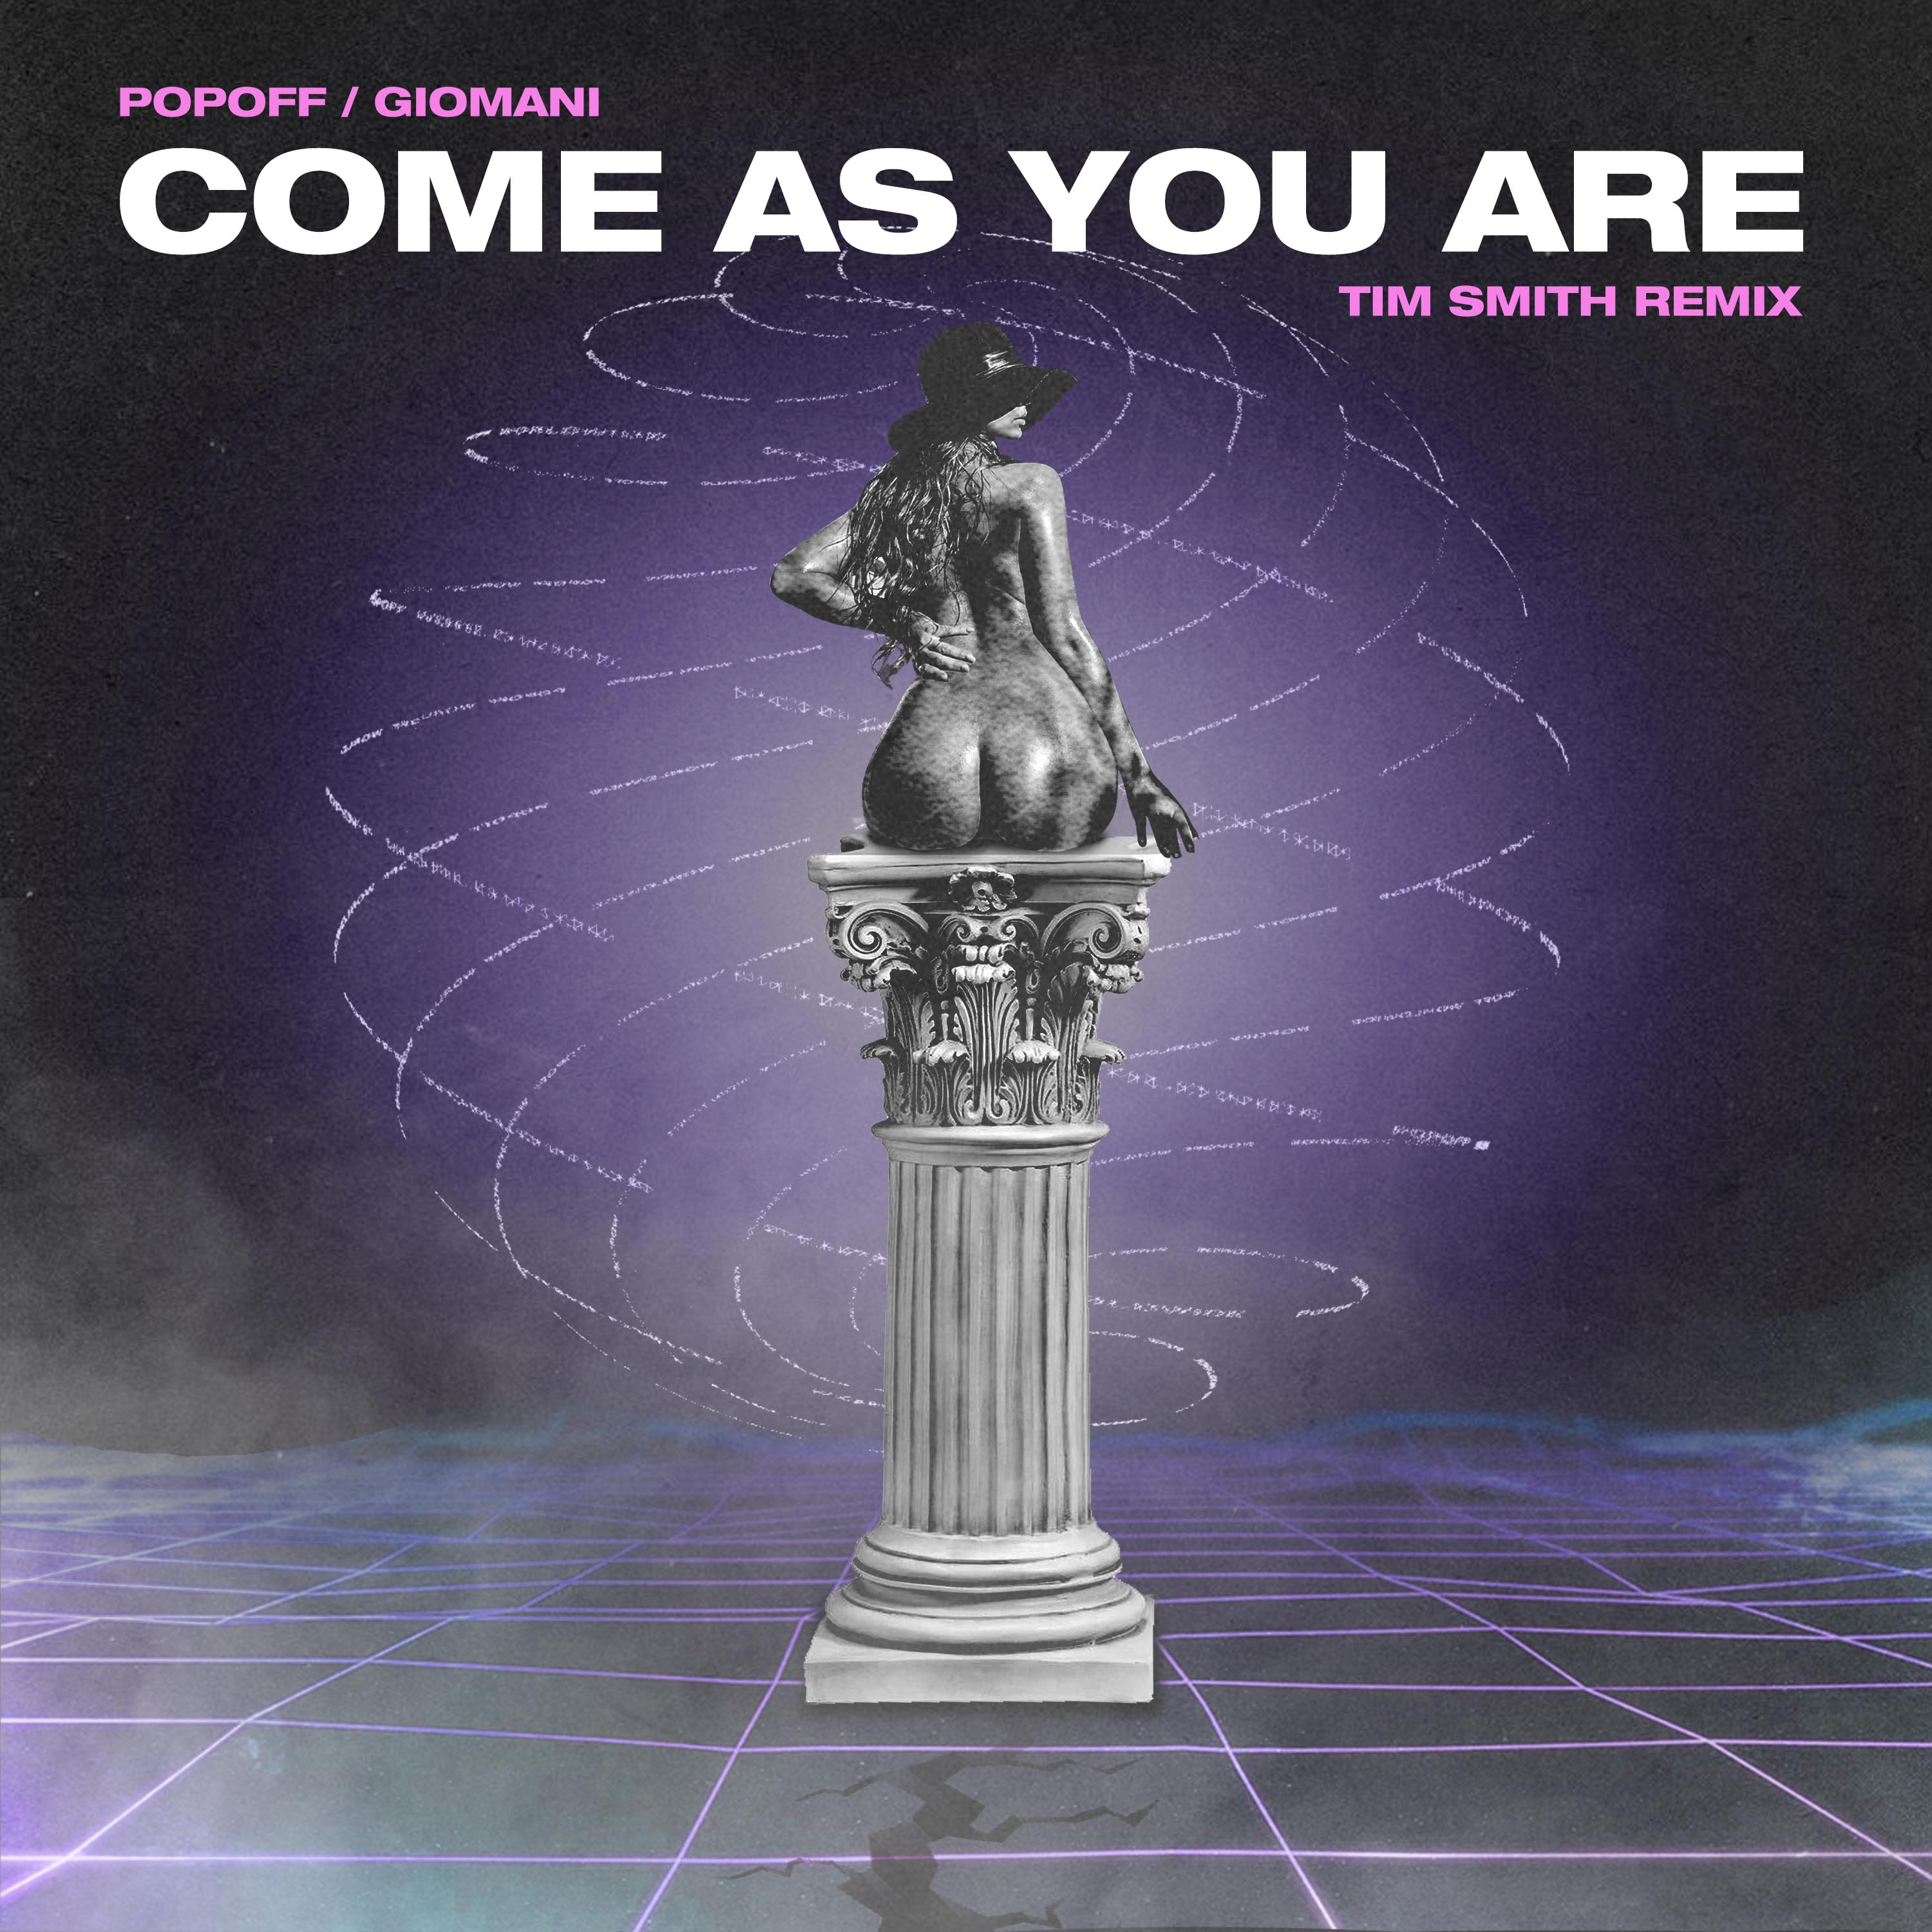 POPOFF - COME AS YOU ARE (TIM SMITH REMIX) (COVER ART)